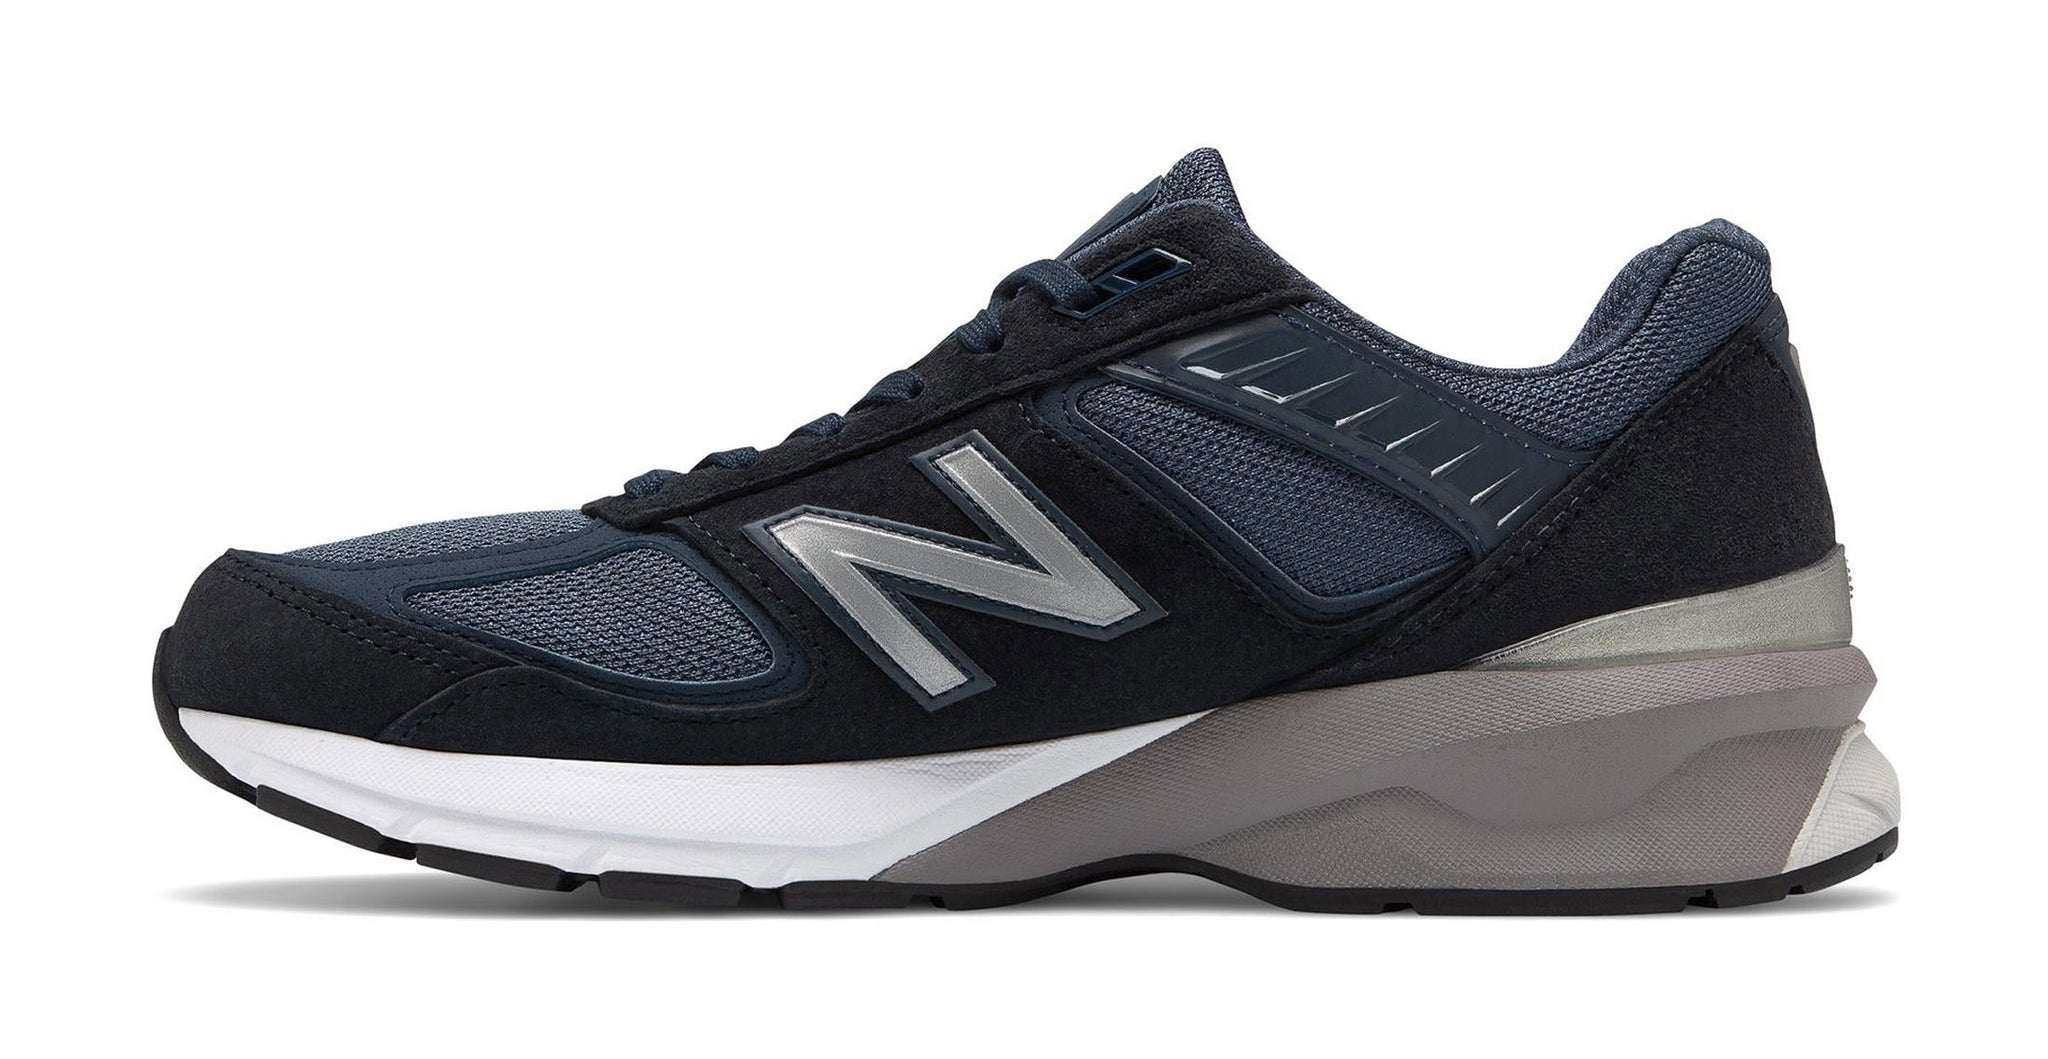 New Balance 990v5 Navy/White Men's Shoes